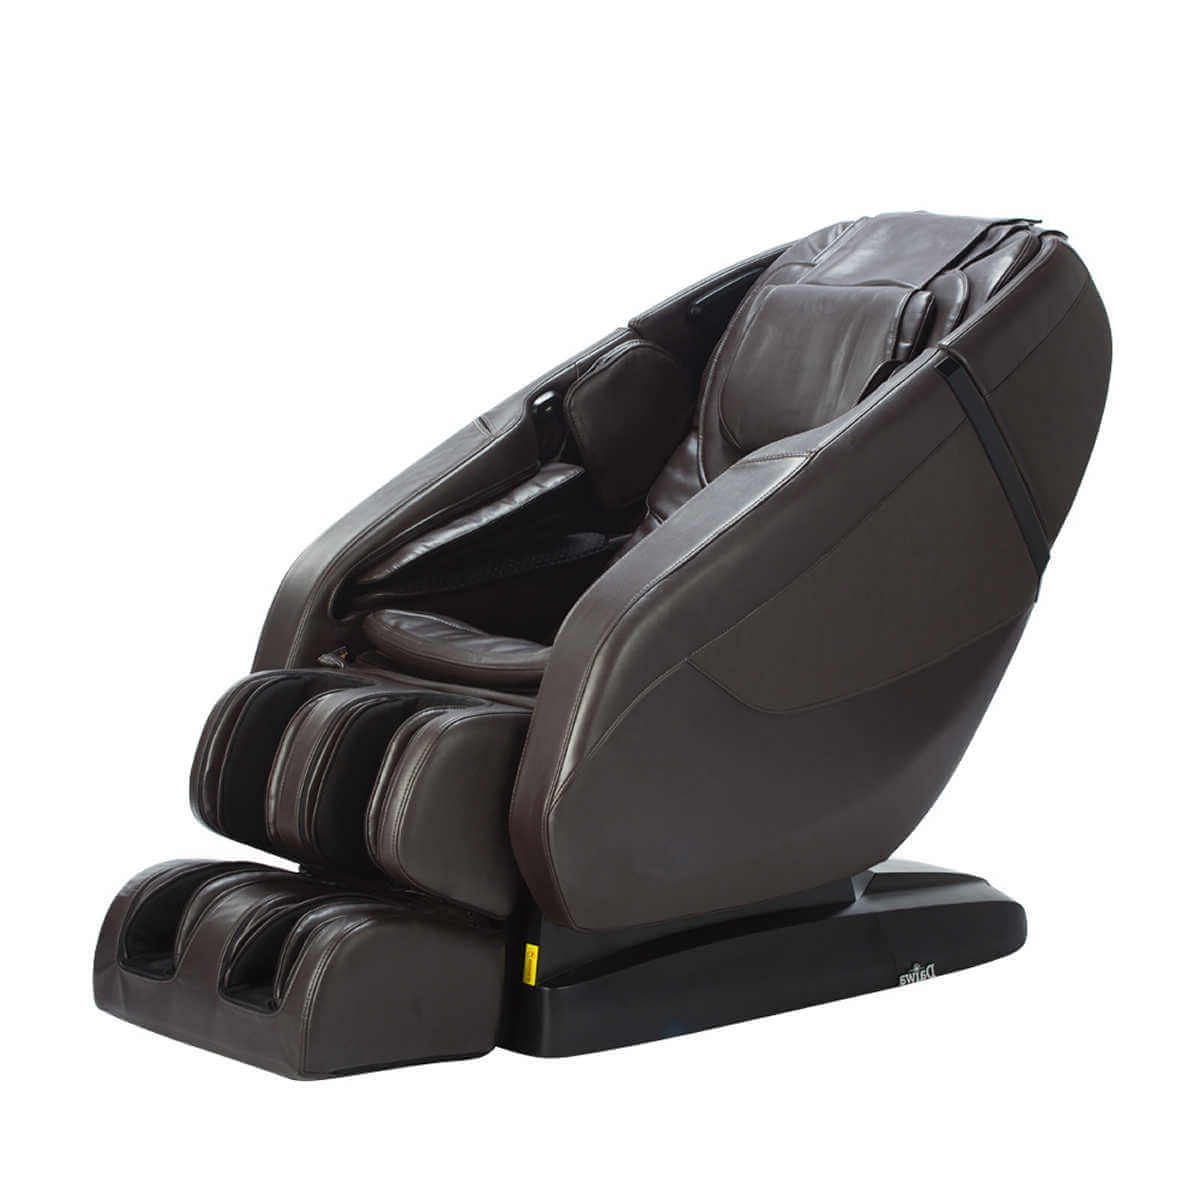 Inada Sogno Dreamwave Massage Chair Daiwa Solace Massage Chair Massage Chair Reviews